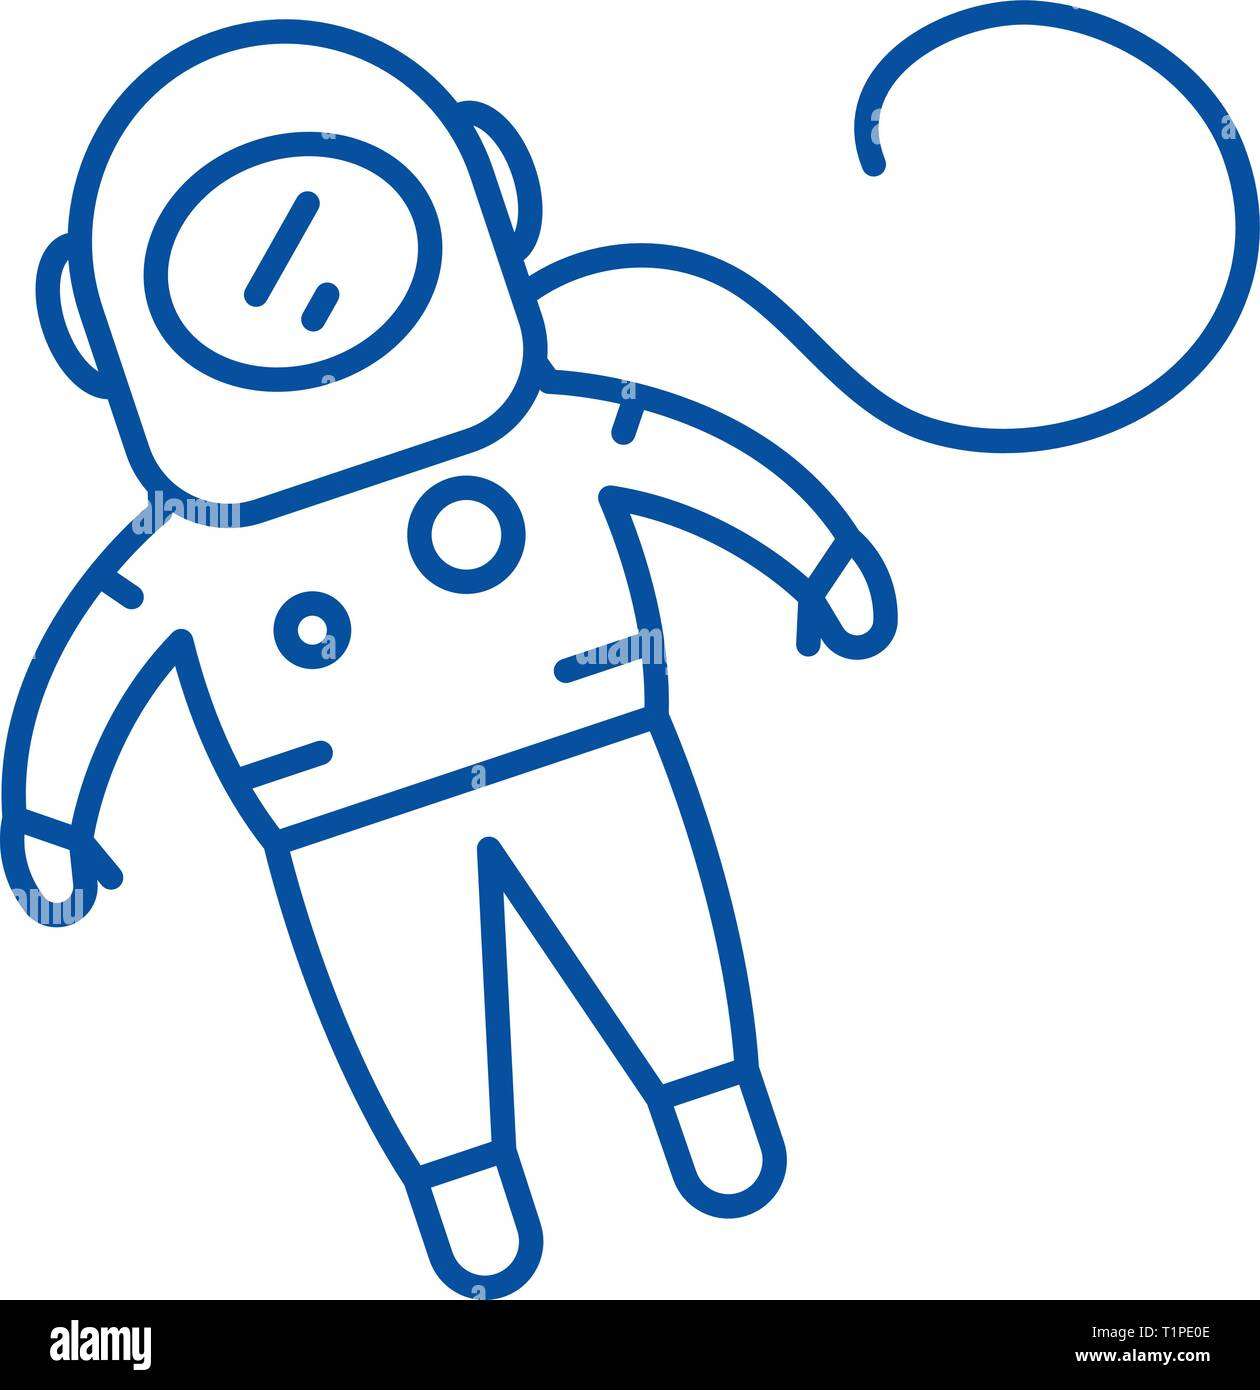 Cosmonaut line icon concept. Cosmonaut flat  vector symbol, sign, outline illustration. - Stock Image